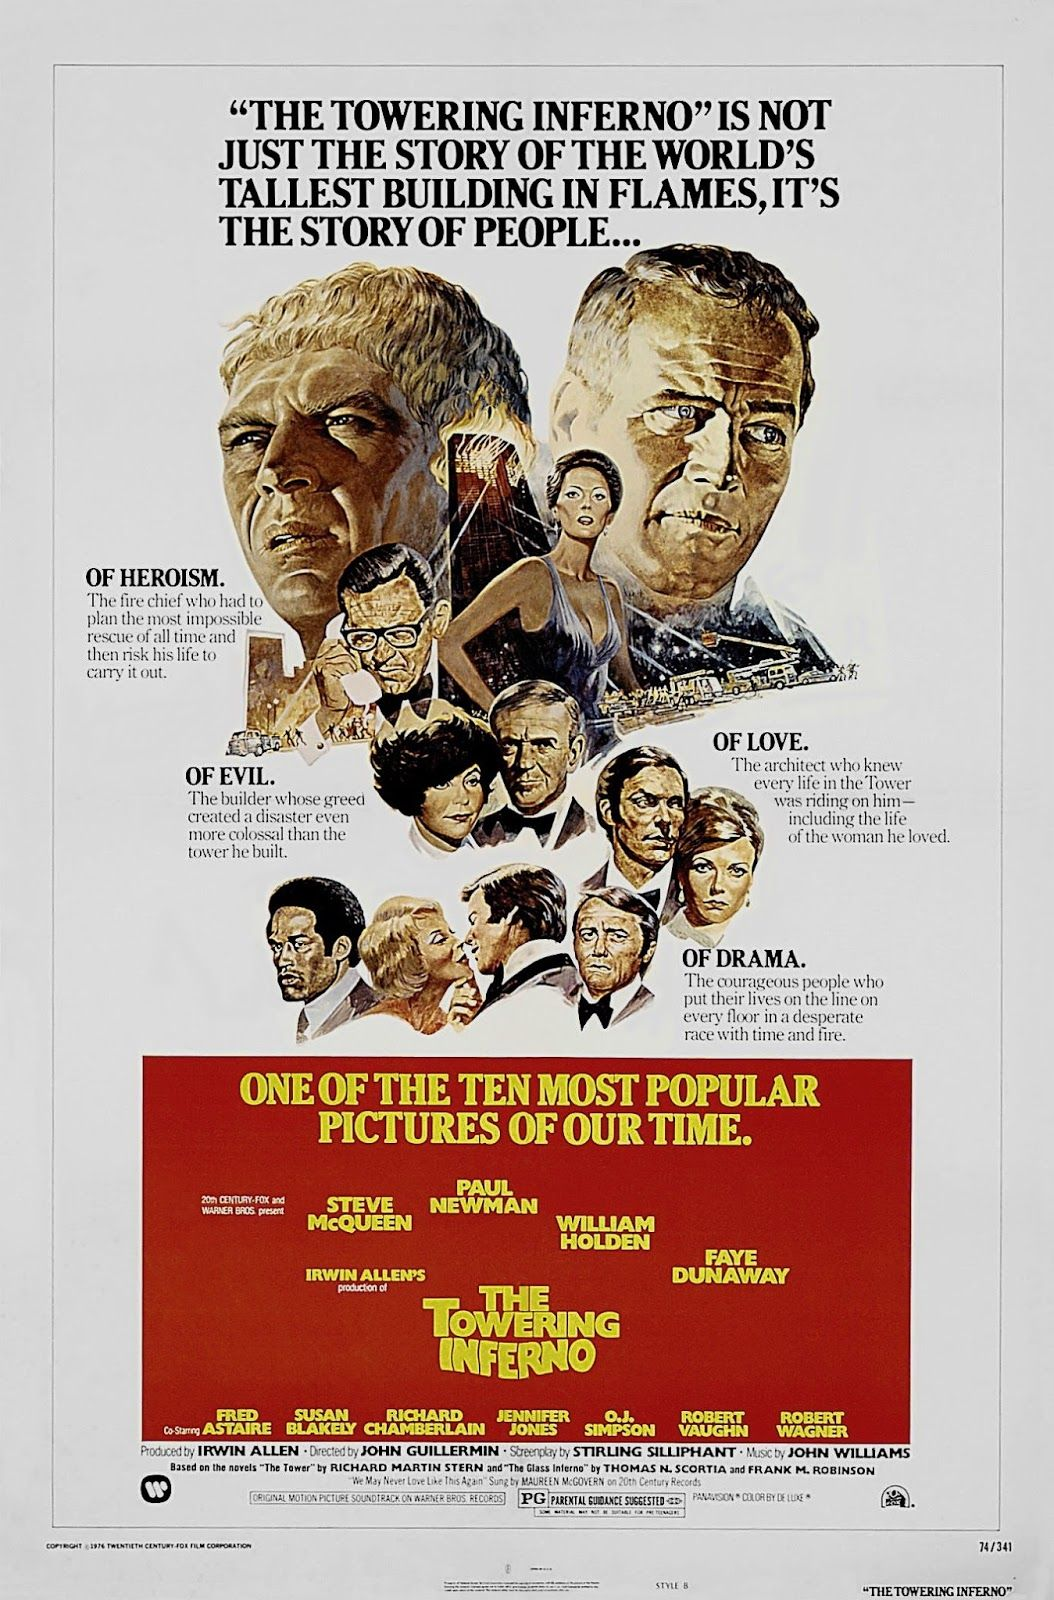 THE+TOWERING+INFERNO+%281974%29+poster+7.jpg (1054×1600)